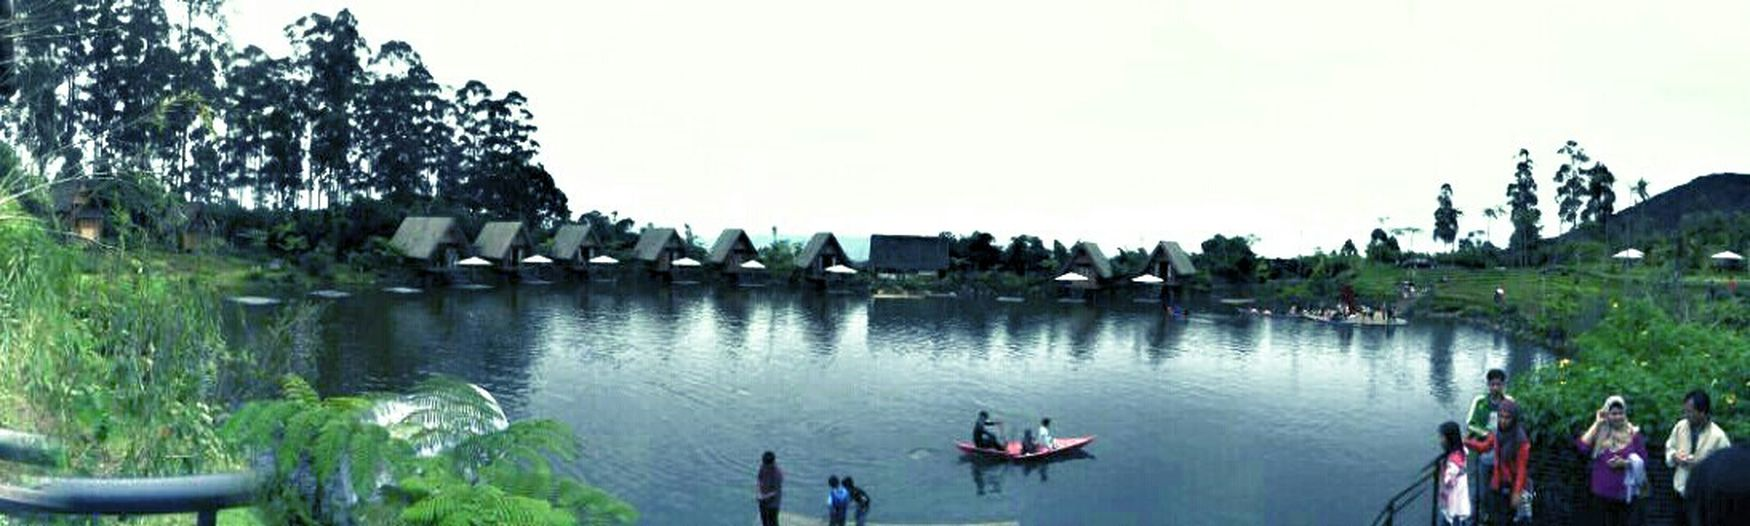 Panoramic View Panoramic Landscape Outdoor Pictures Outdoor Photography Enjoying Nature Bandungcity Lake View EyeEm Nature Lover